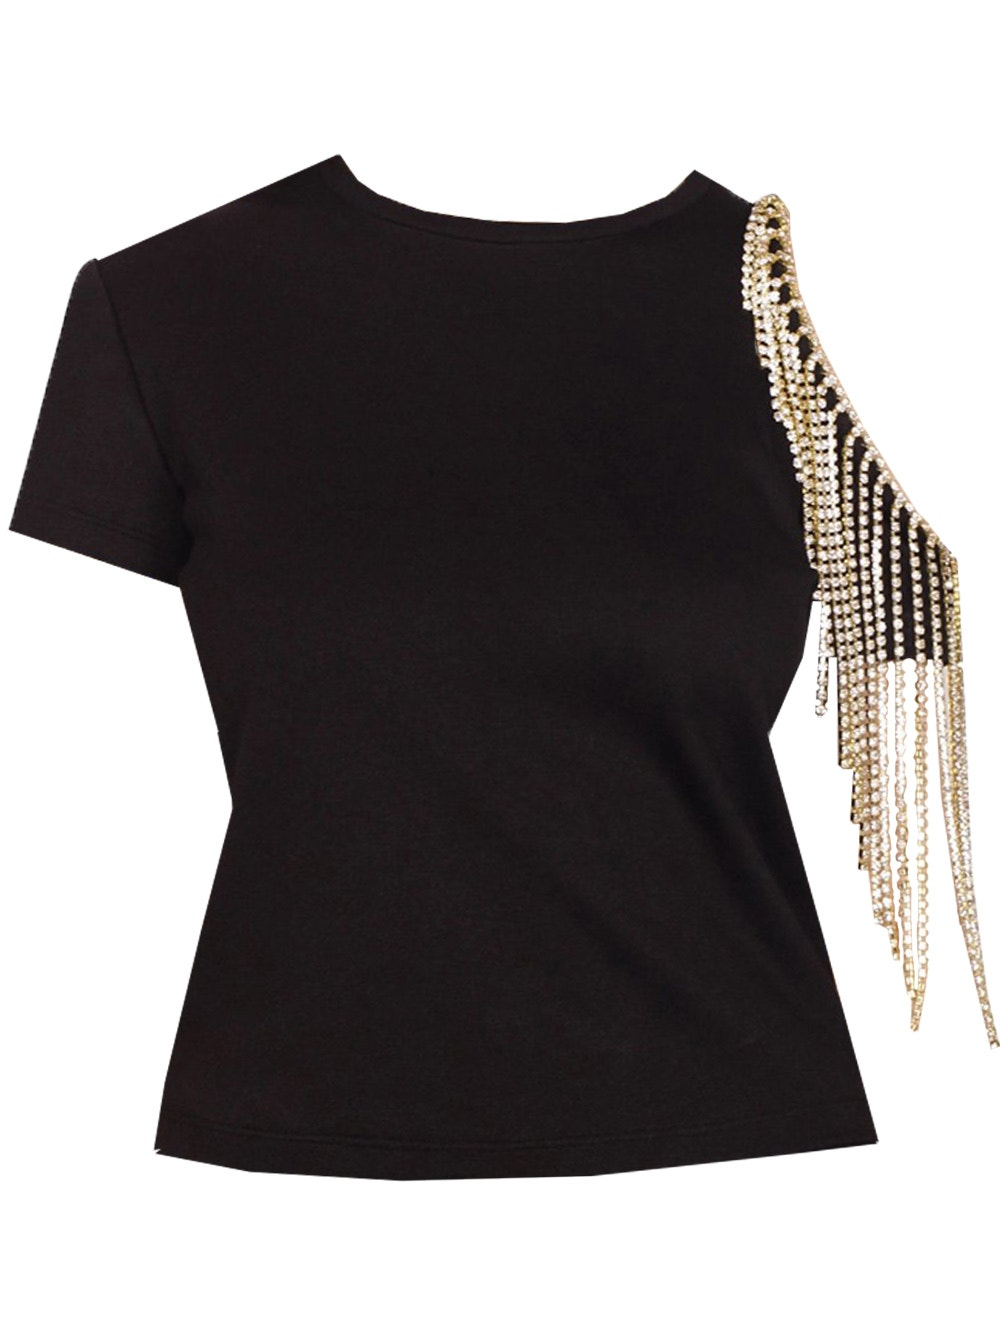 Area BLACK CRYSTAL FRINGE CUT-OUT T-SHIRT